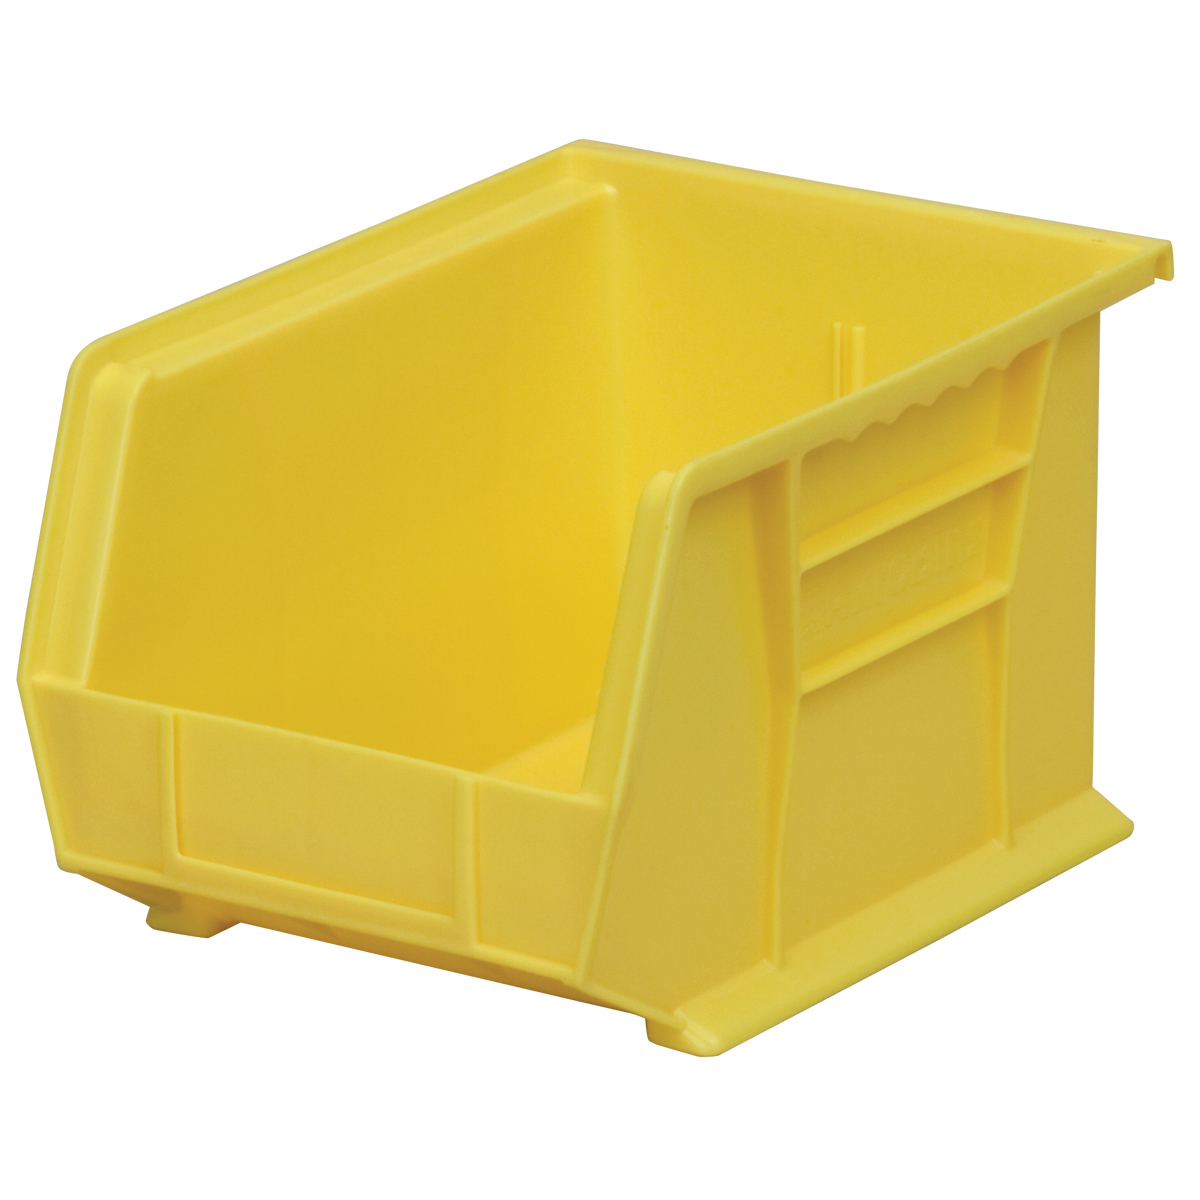 AkroBin 10-3/4 x 8-1/4 x 7, Yellow (30239YELLO).  This item sold in carton quantities of 6.